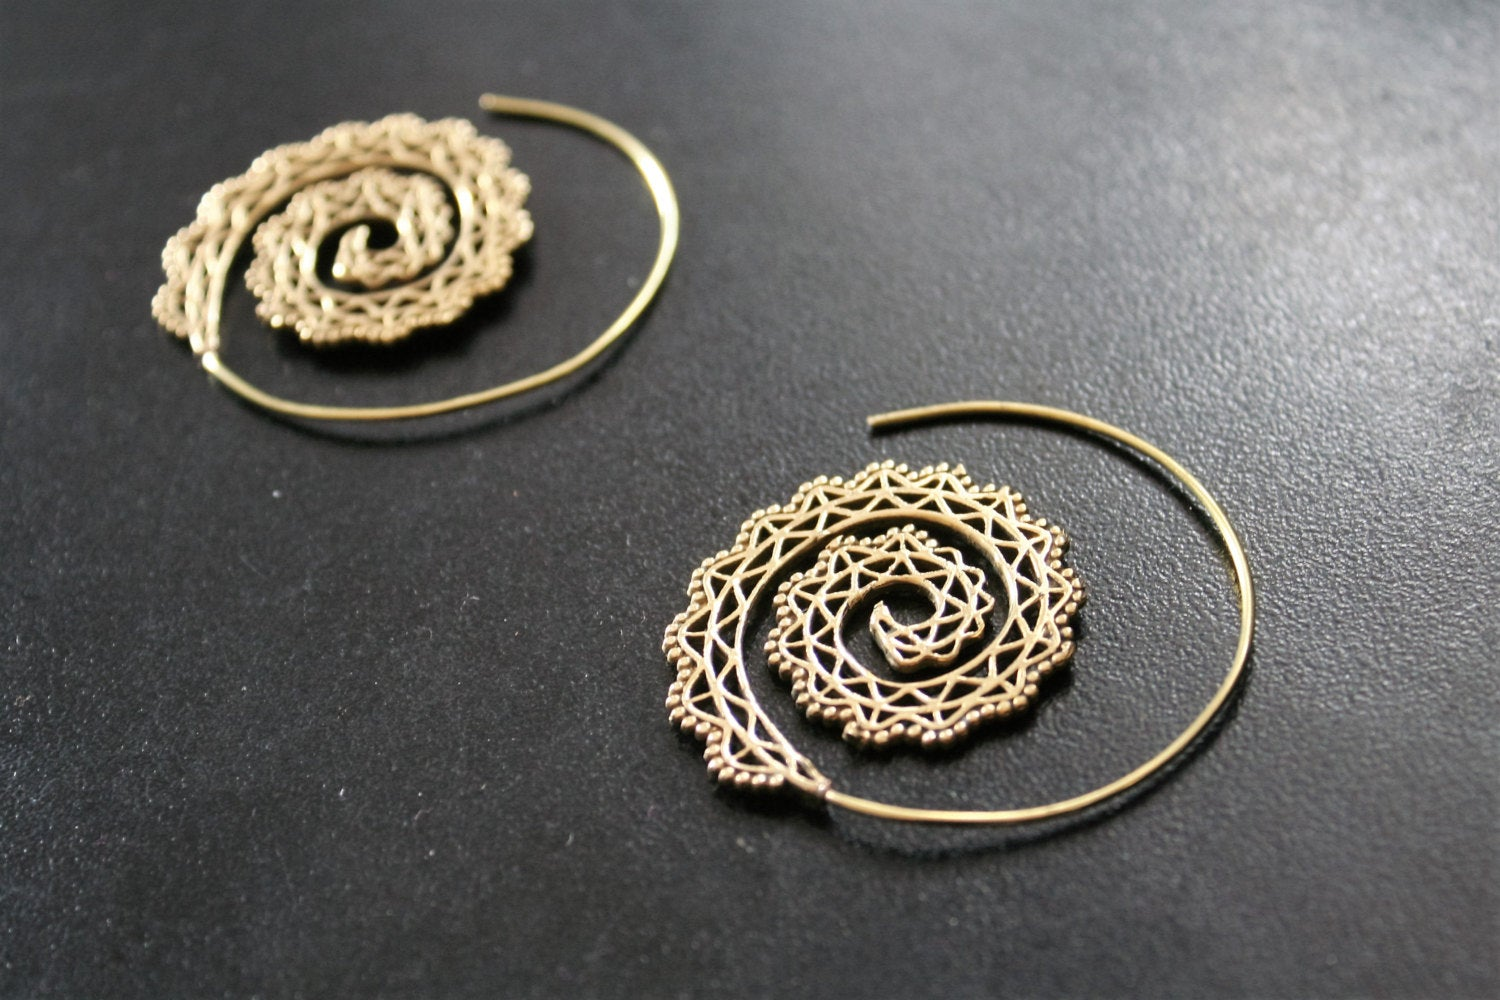 SPIRAL Brass Tribal Earrings - Flower of Life Earrings, Mandala Earrings, Psy, Boho Earrings, Tribal Earrings, Sacred Geometry Earrings